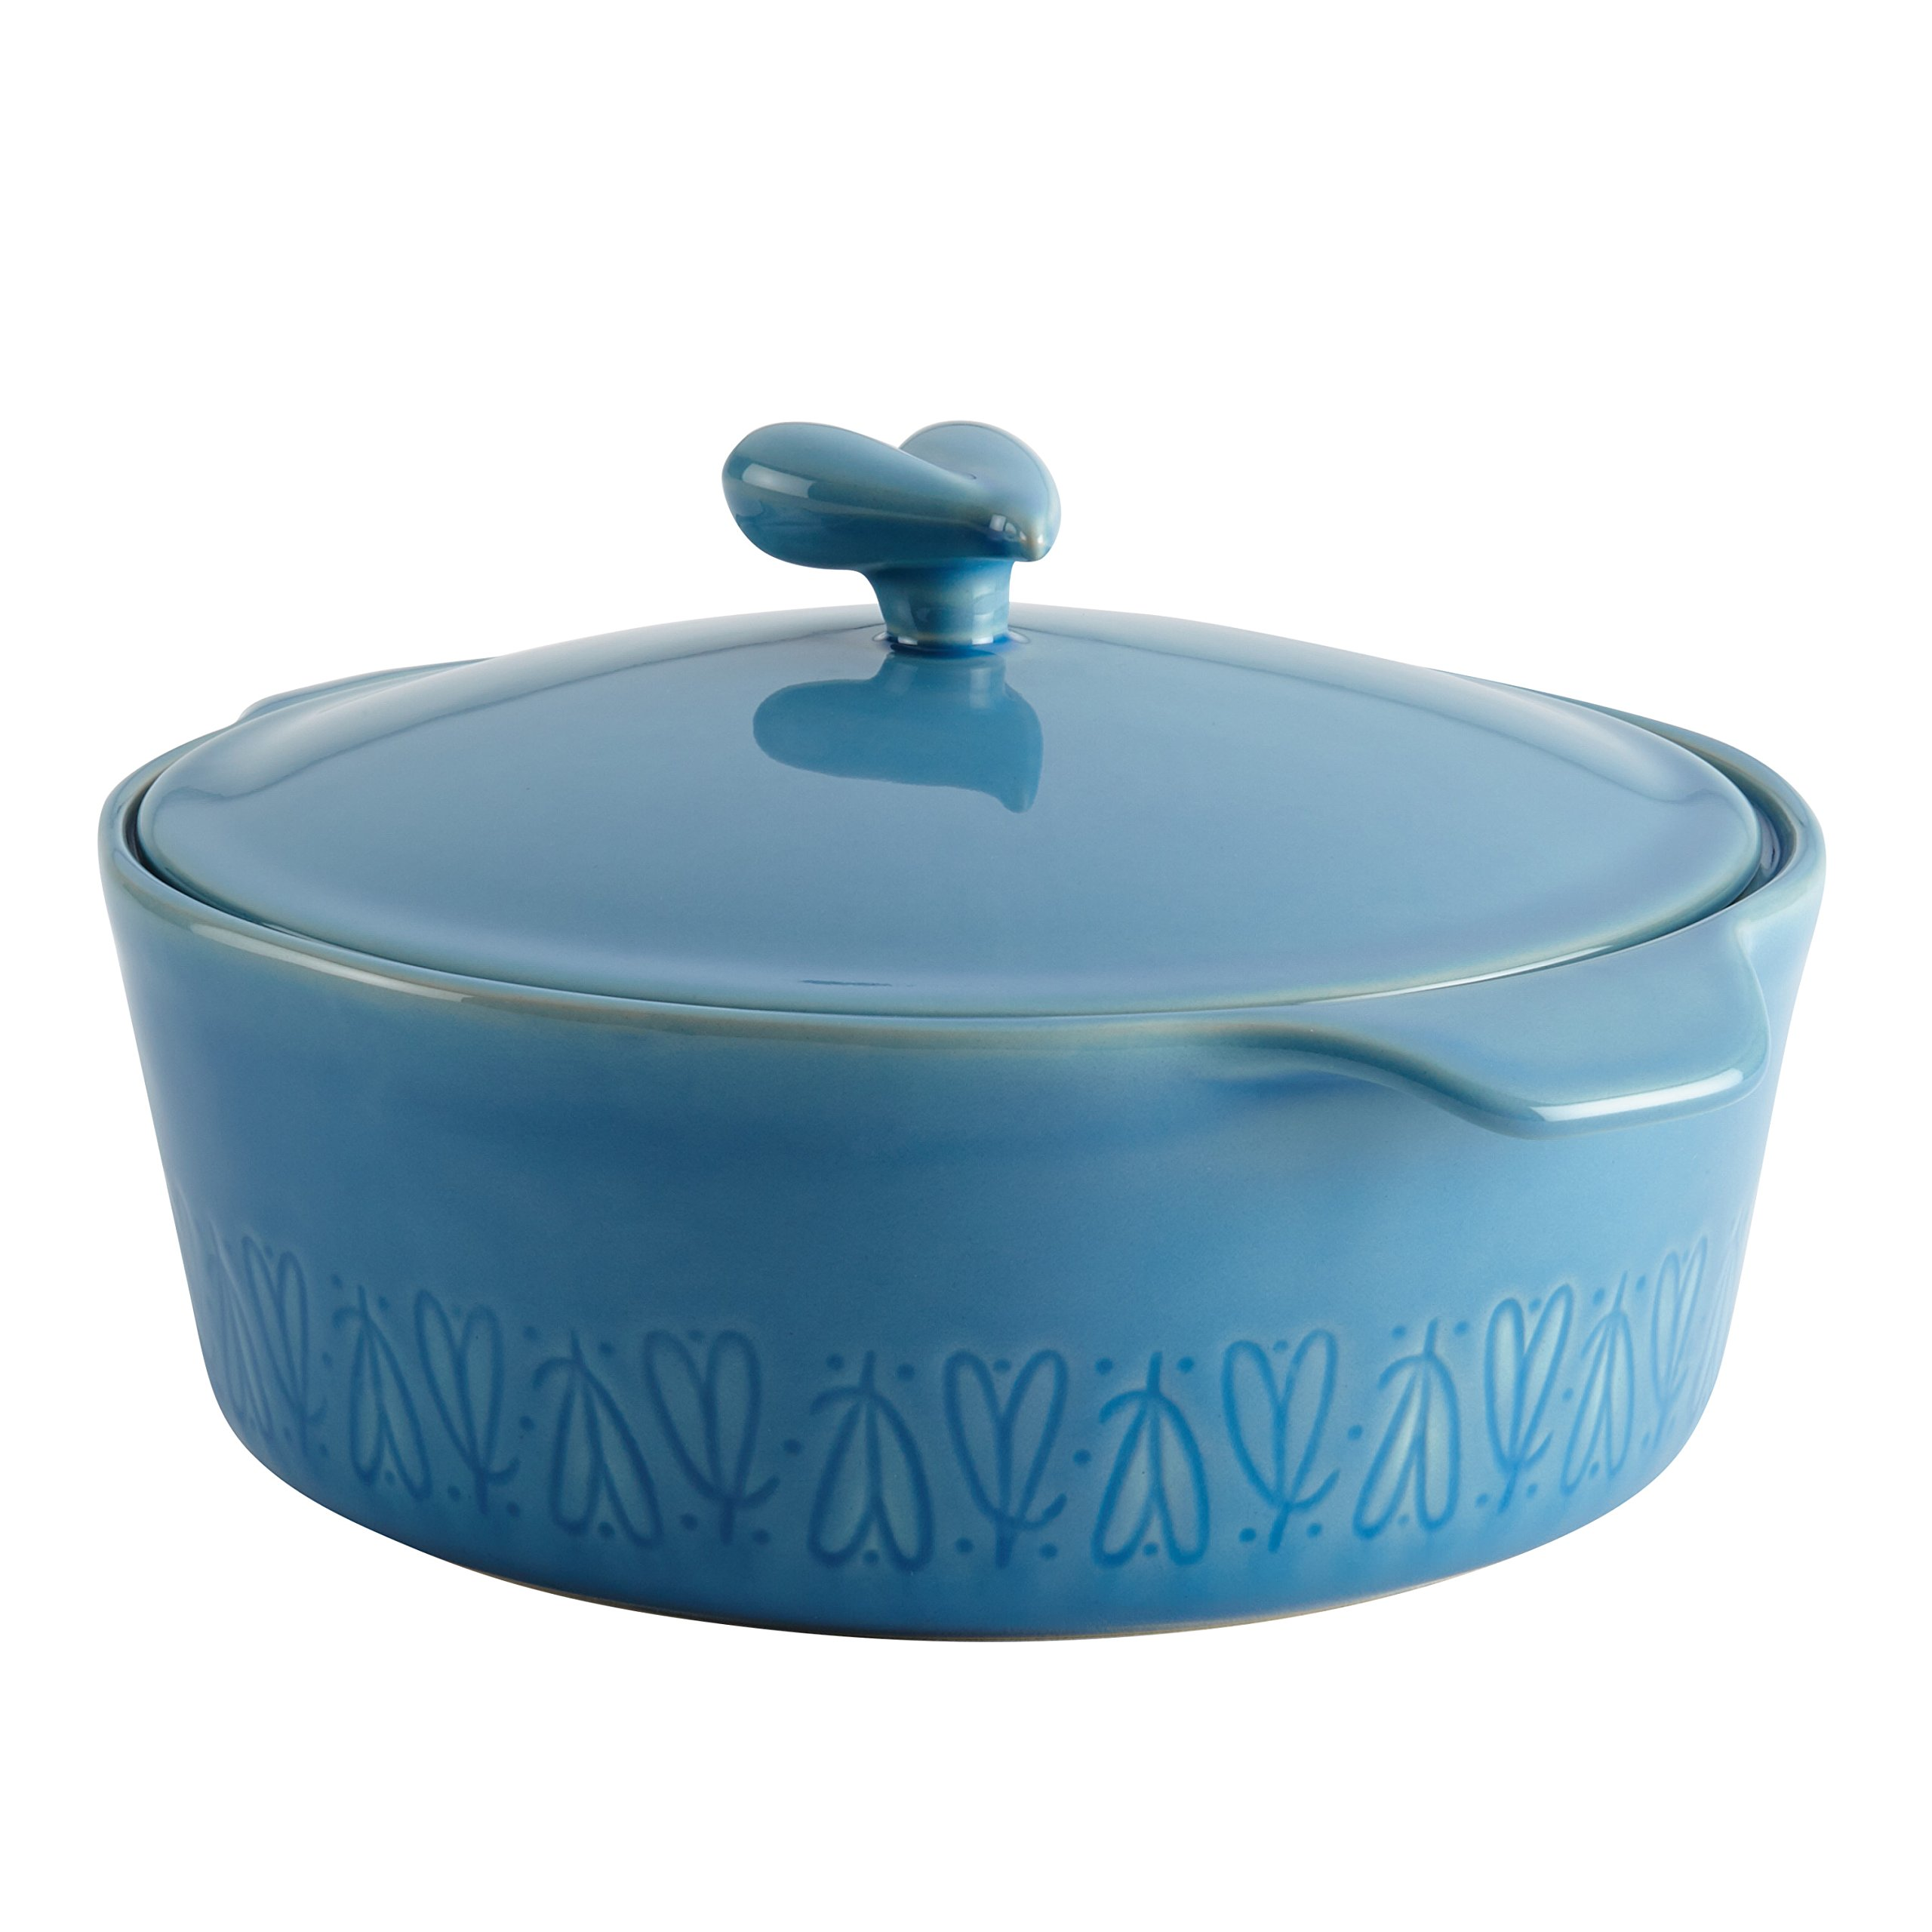 Ayesha Curry Home Collection Stoneware Round Casserole, 2.5-Quart, Blue